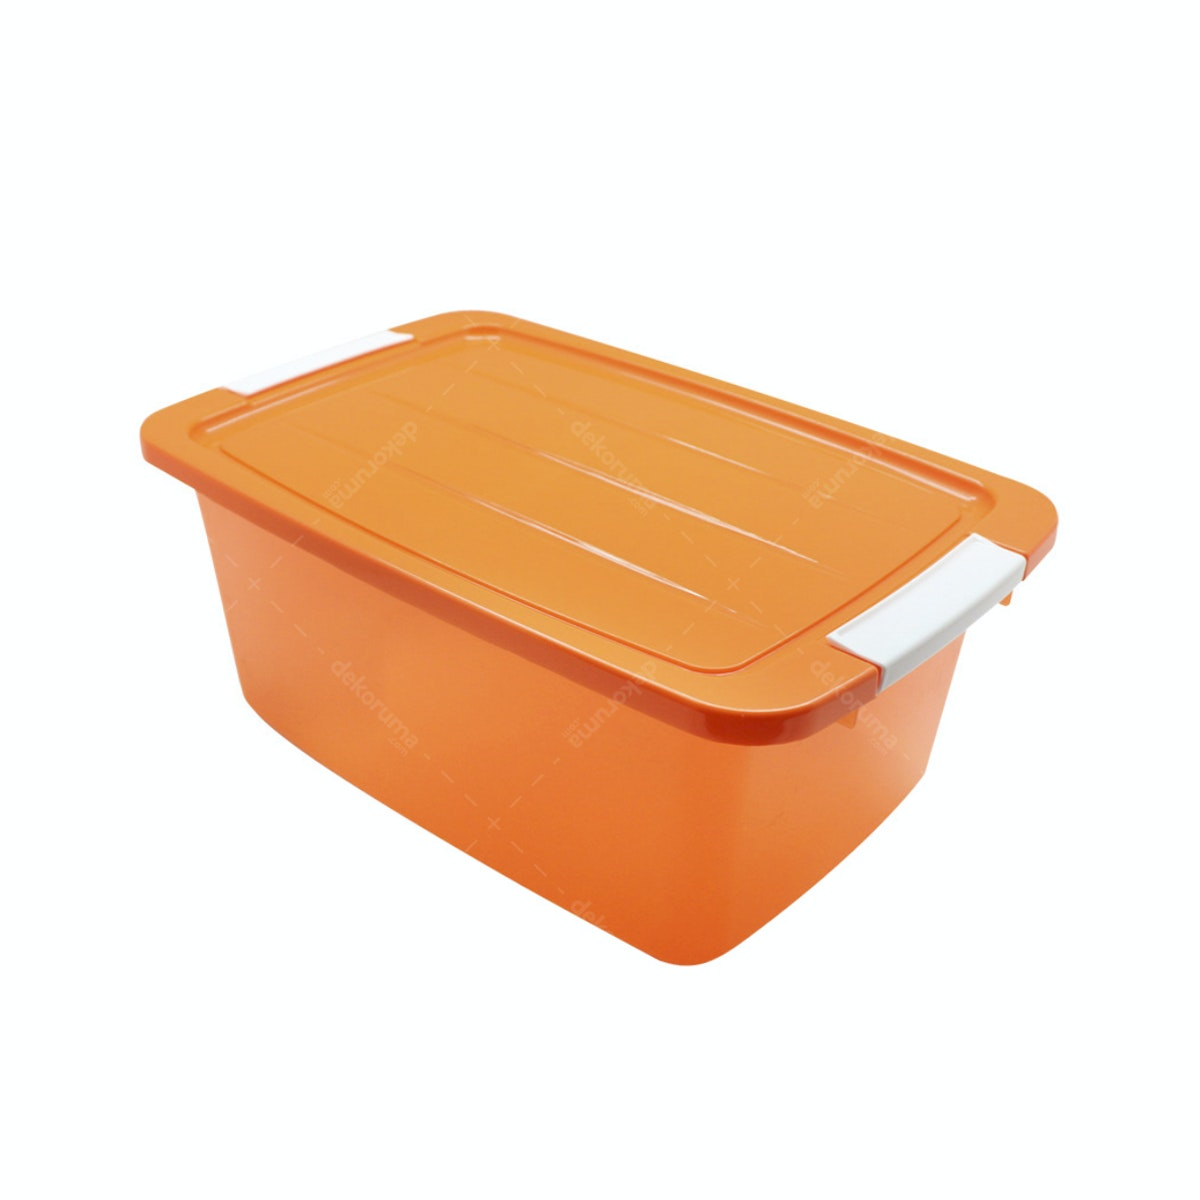 Claris Armax Box 1016 Orange